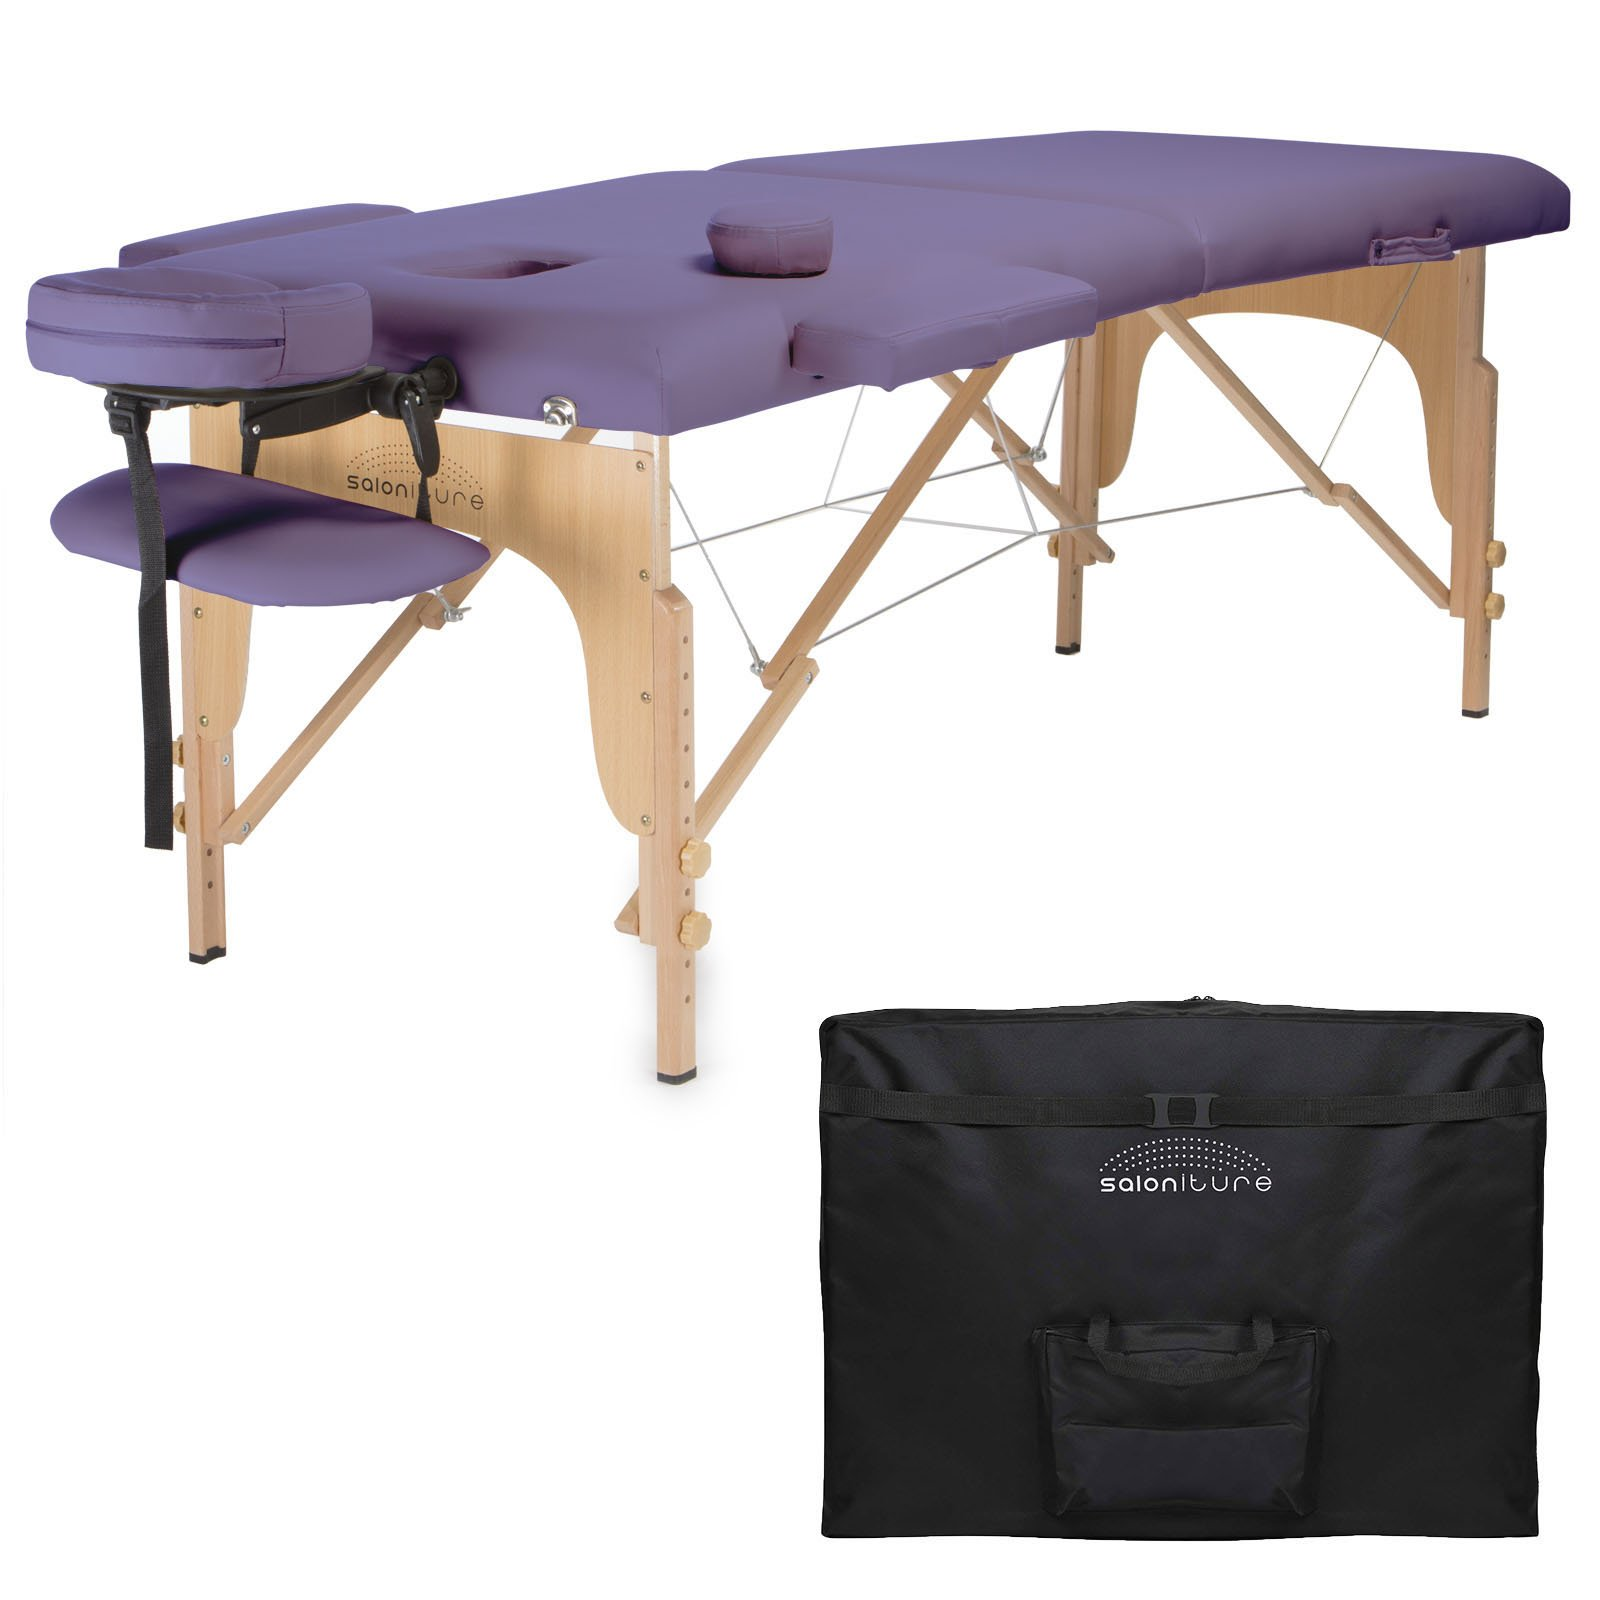 Saloniture Professional Portable Folding Massage Table with Carrying Case - Lavender